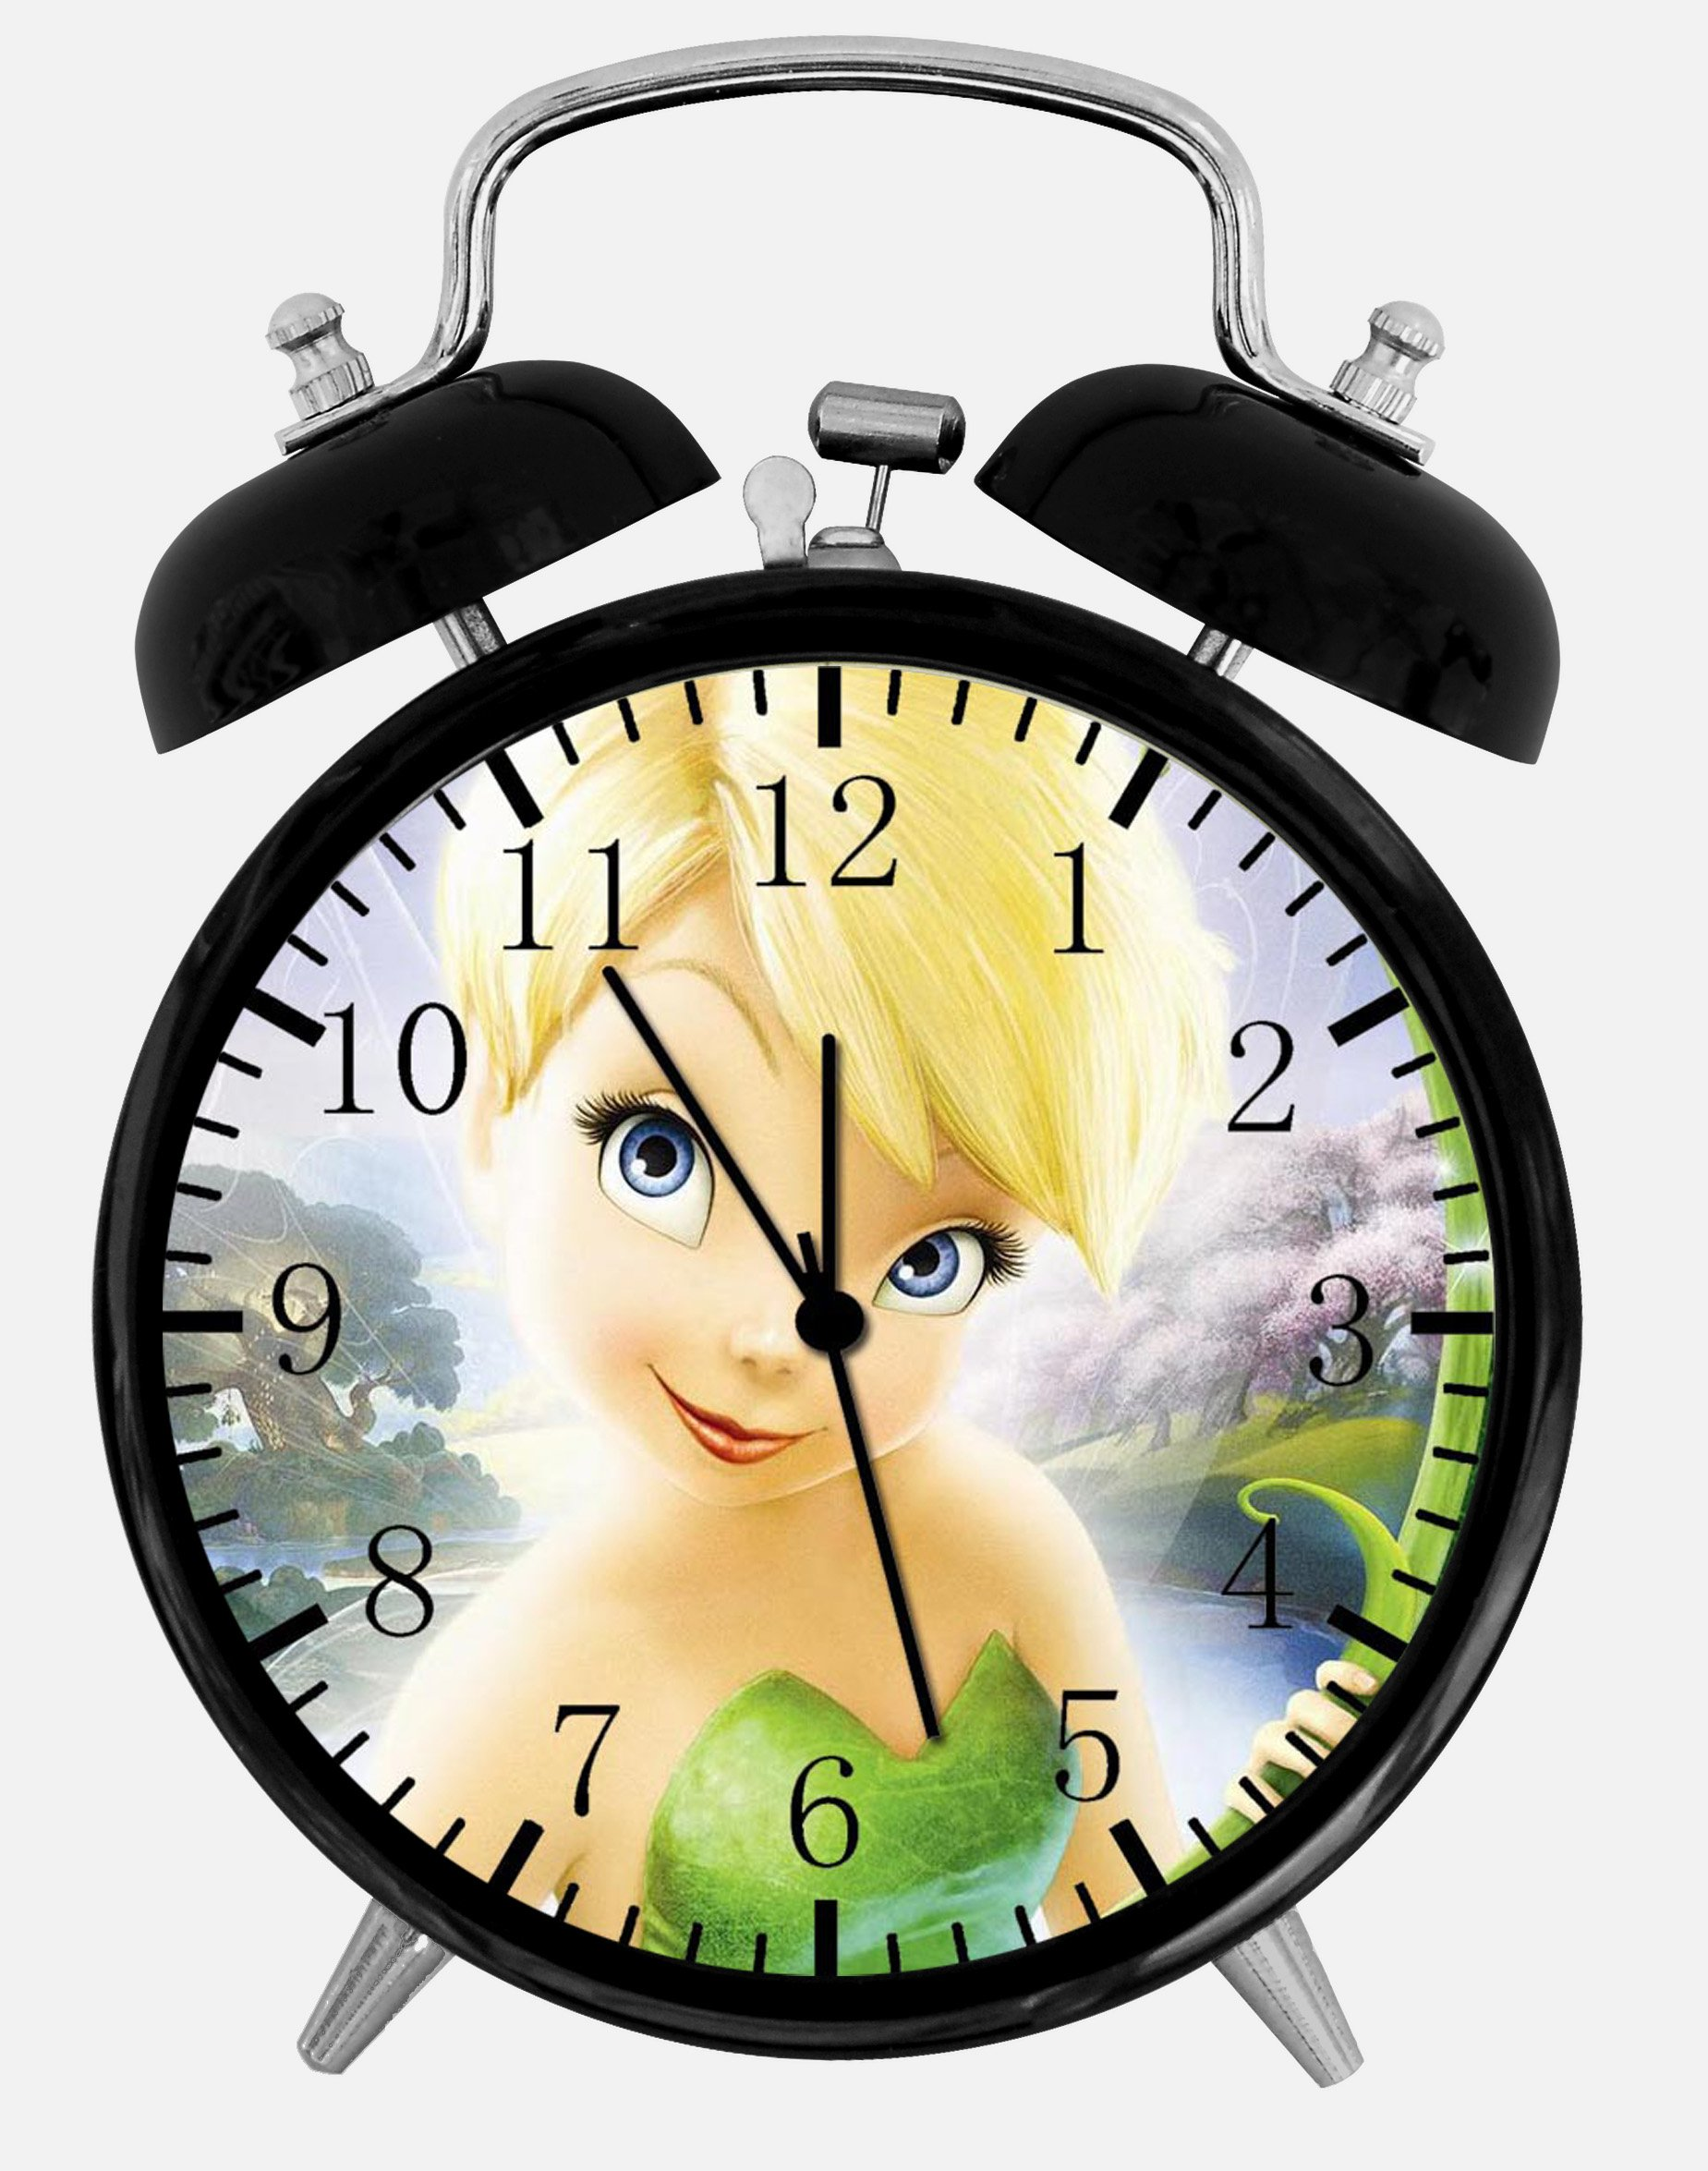 New Little Fairies Tinkerbell Alarm Desk Clock 3.75'' Room Decor X56 Will Be a Nice Gift